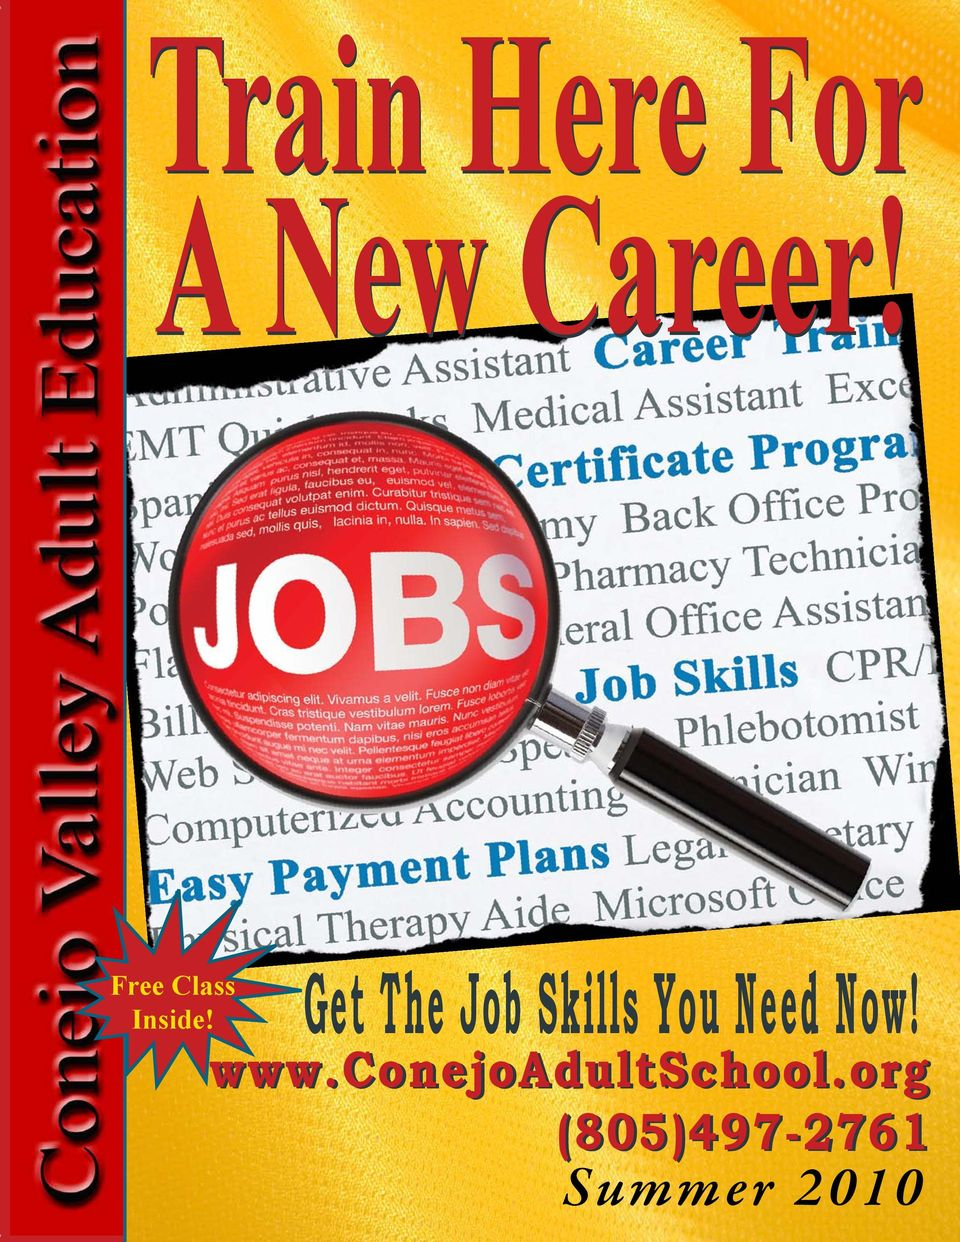 Get The Job Skills You Need Now!